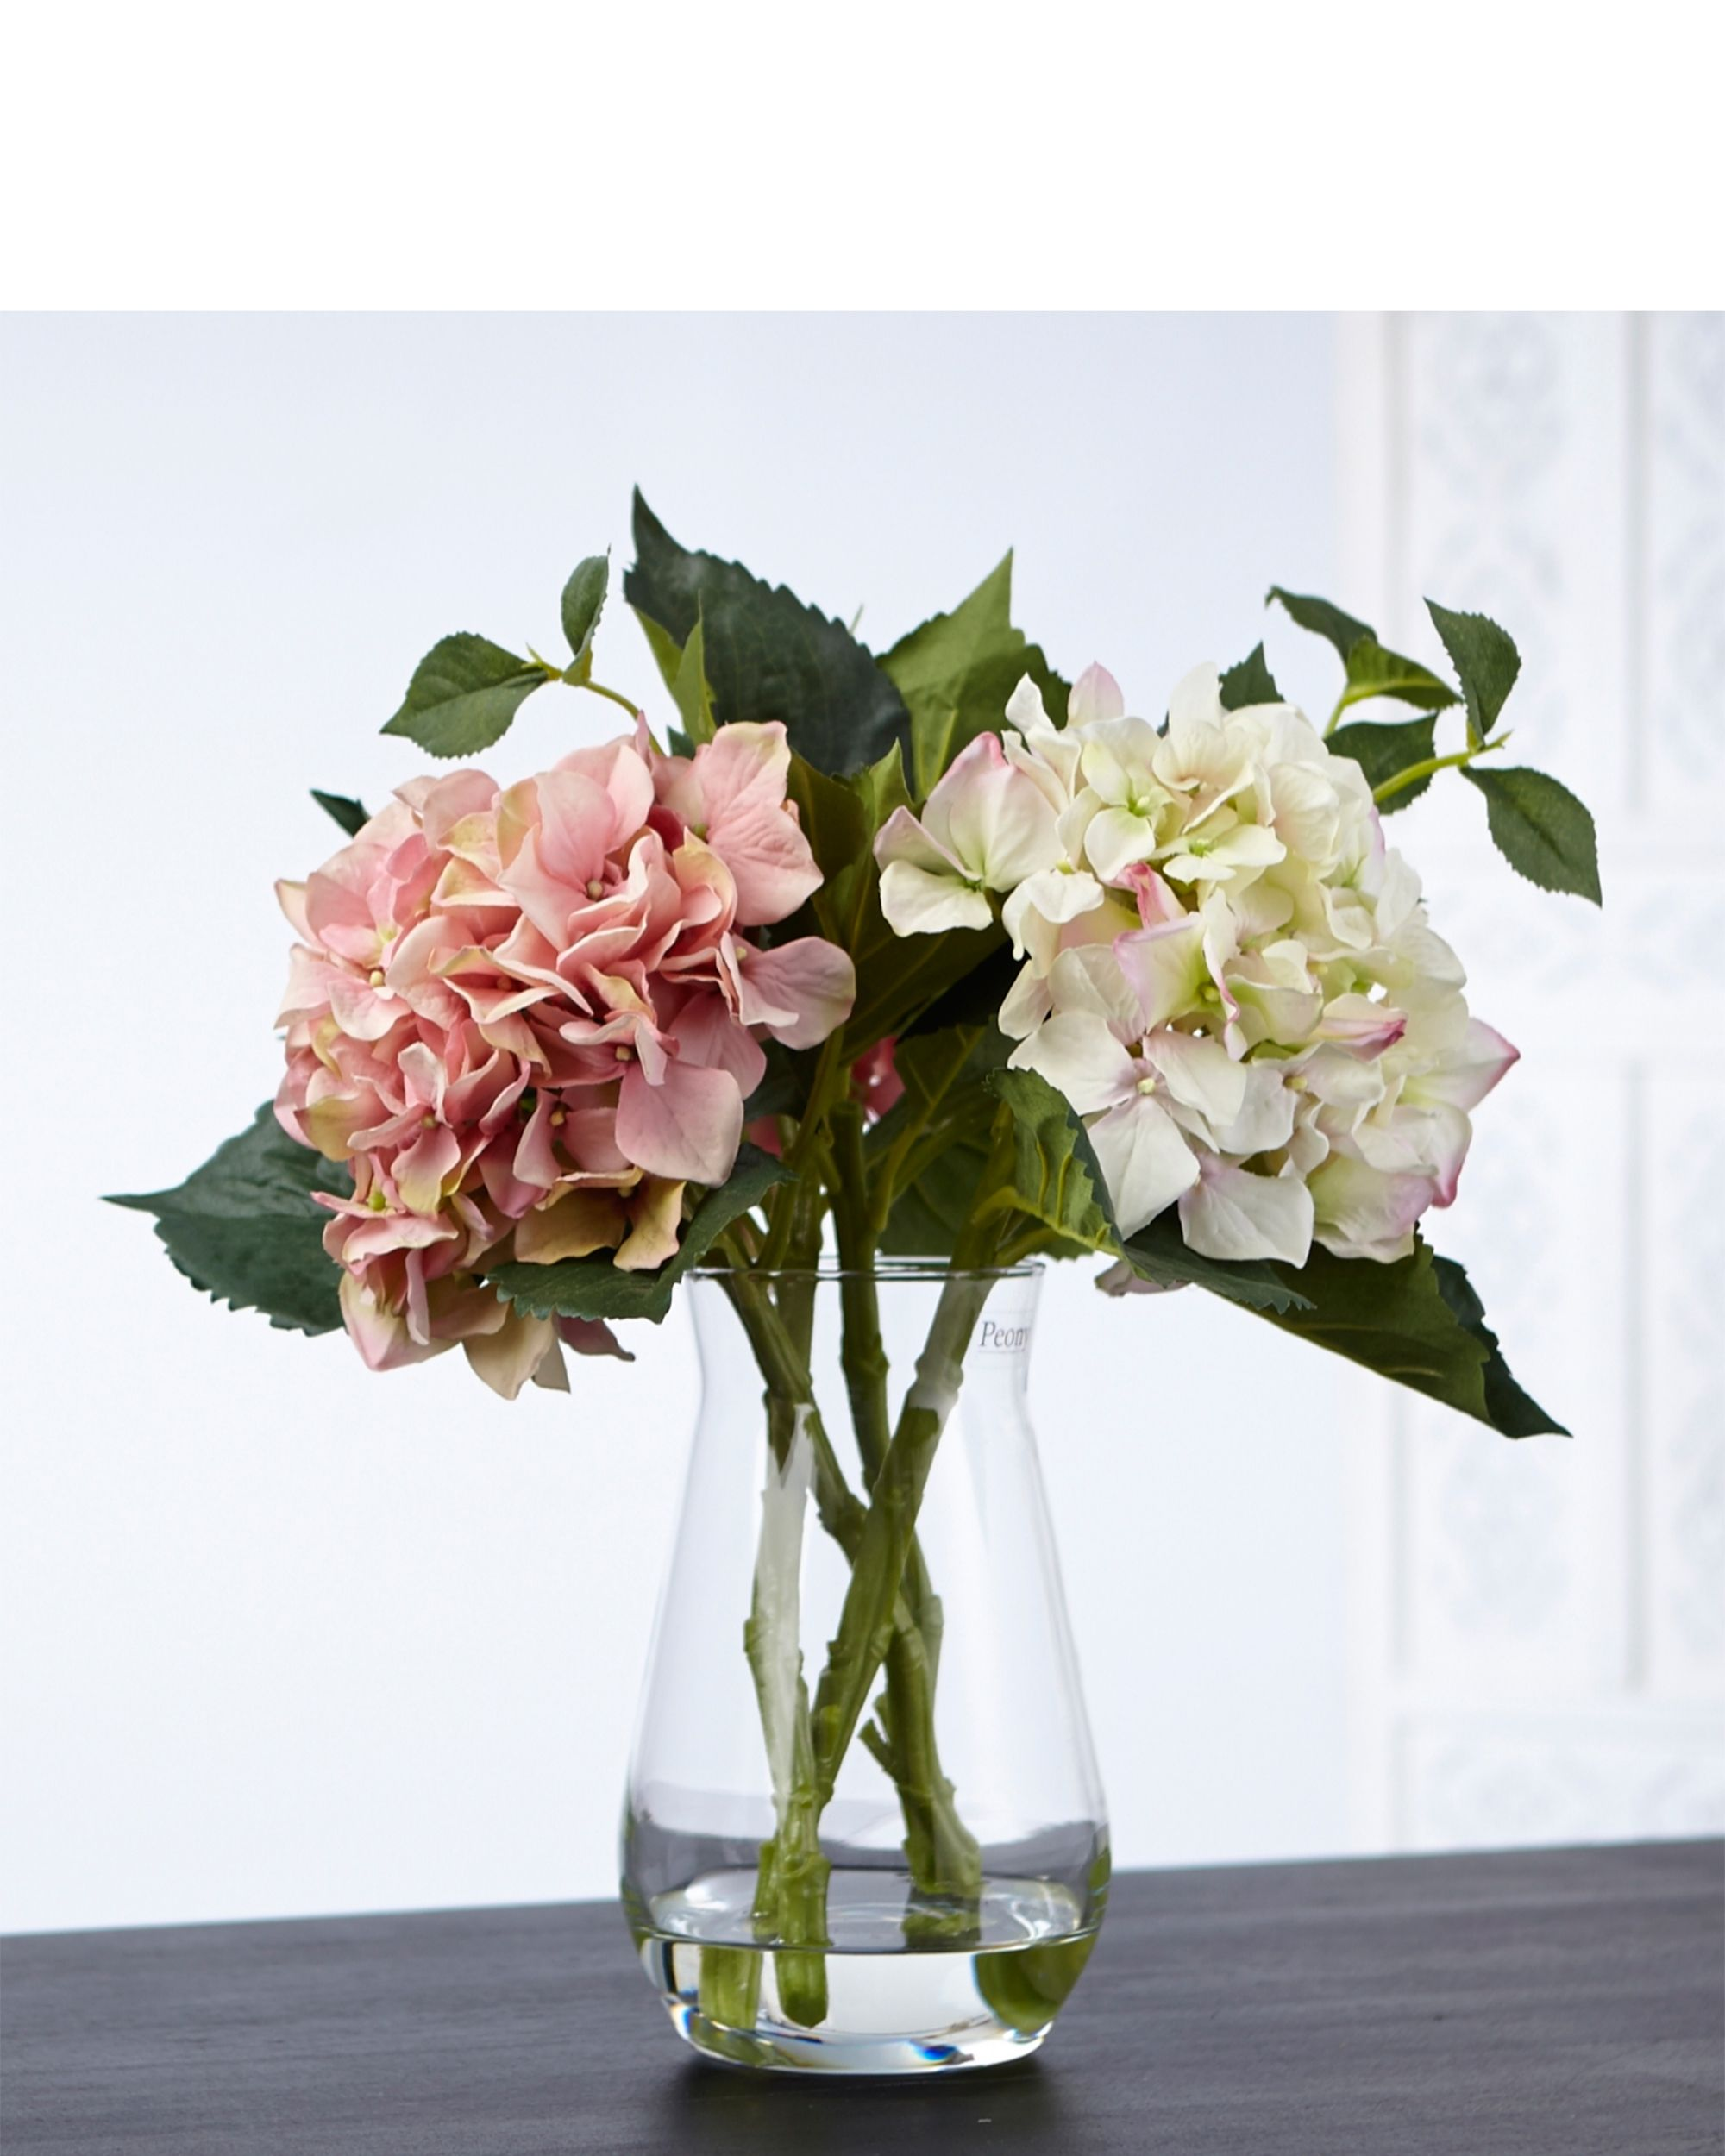 Artificial peonies in a vase